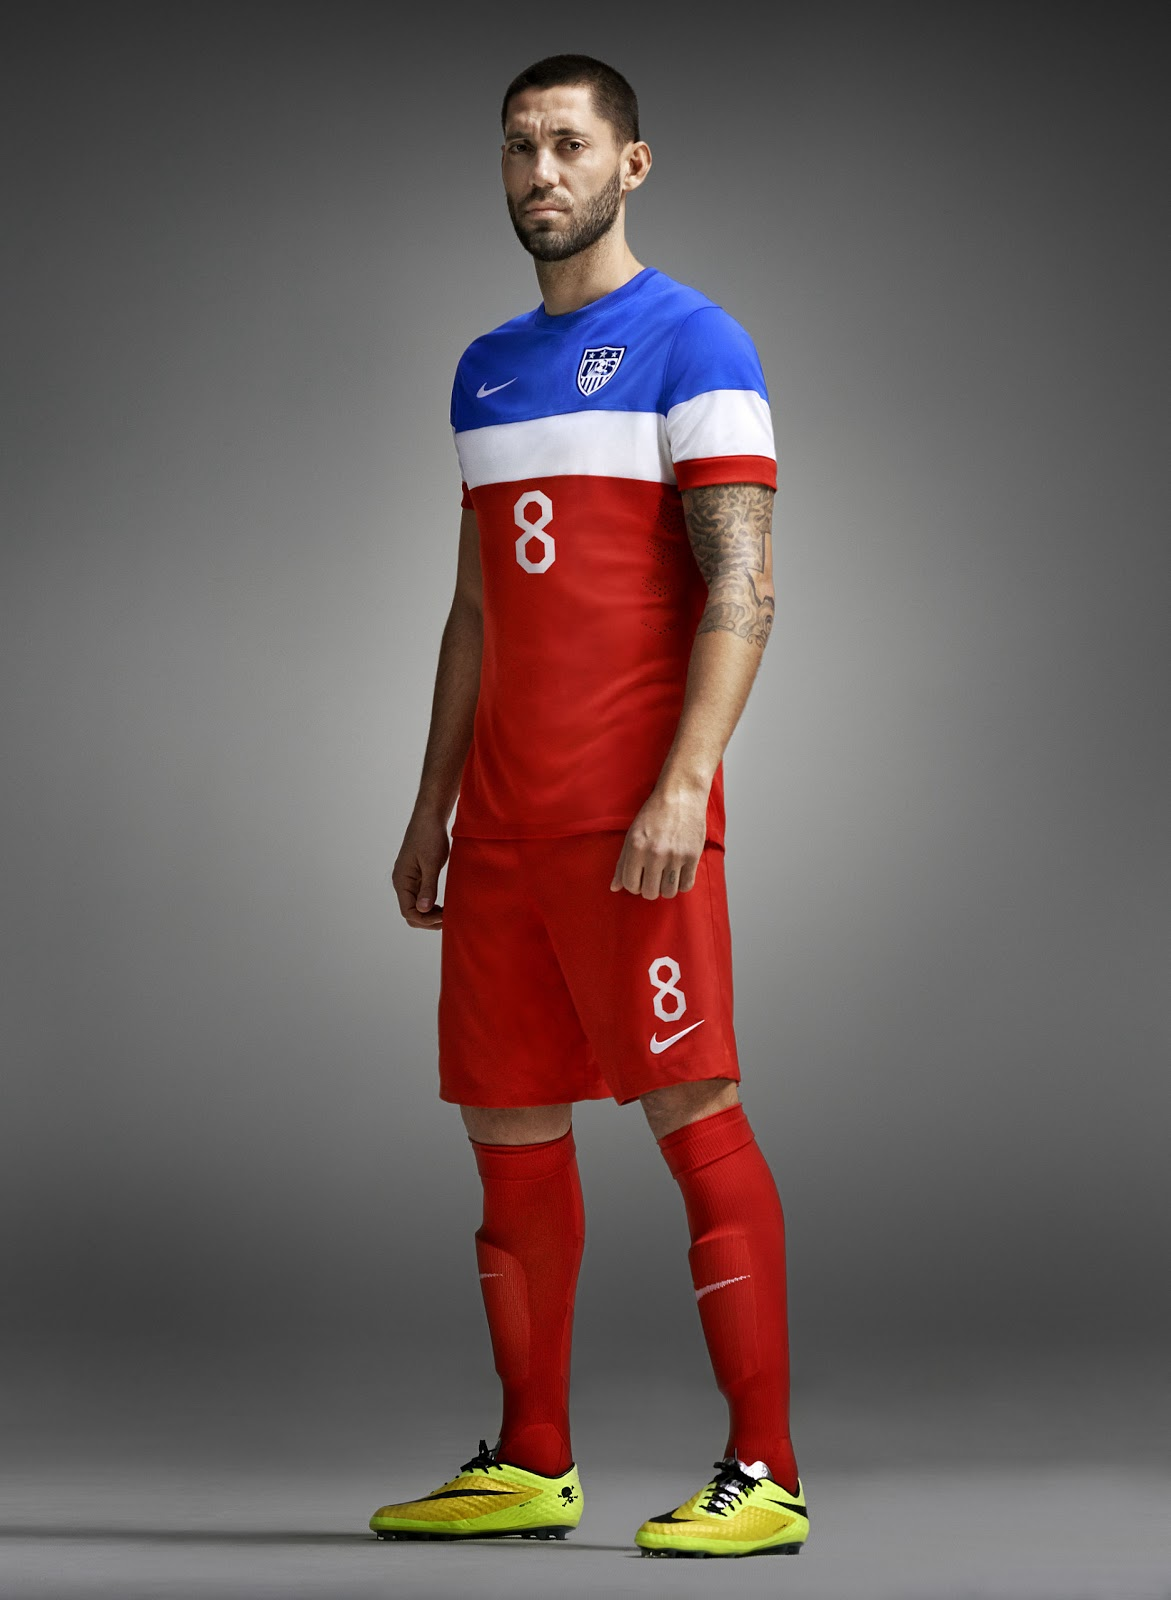 newest f1892 6b3db U.S. Soccer needs an identity, and the Waldo jersey is the ...